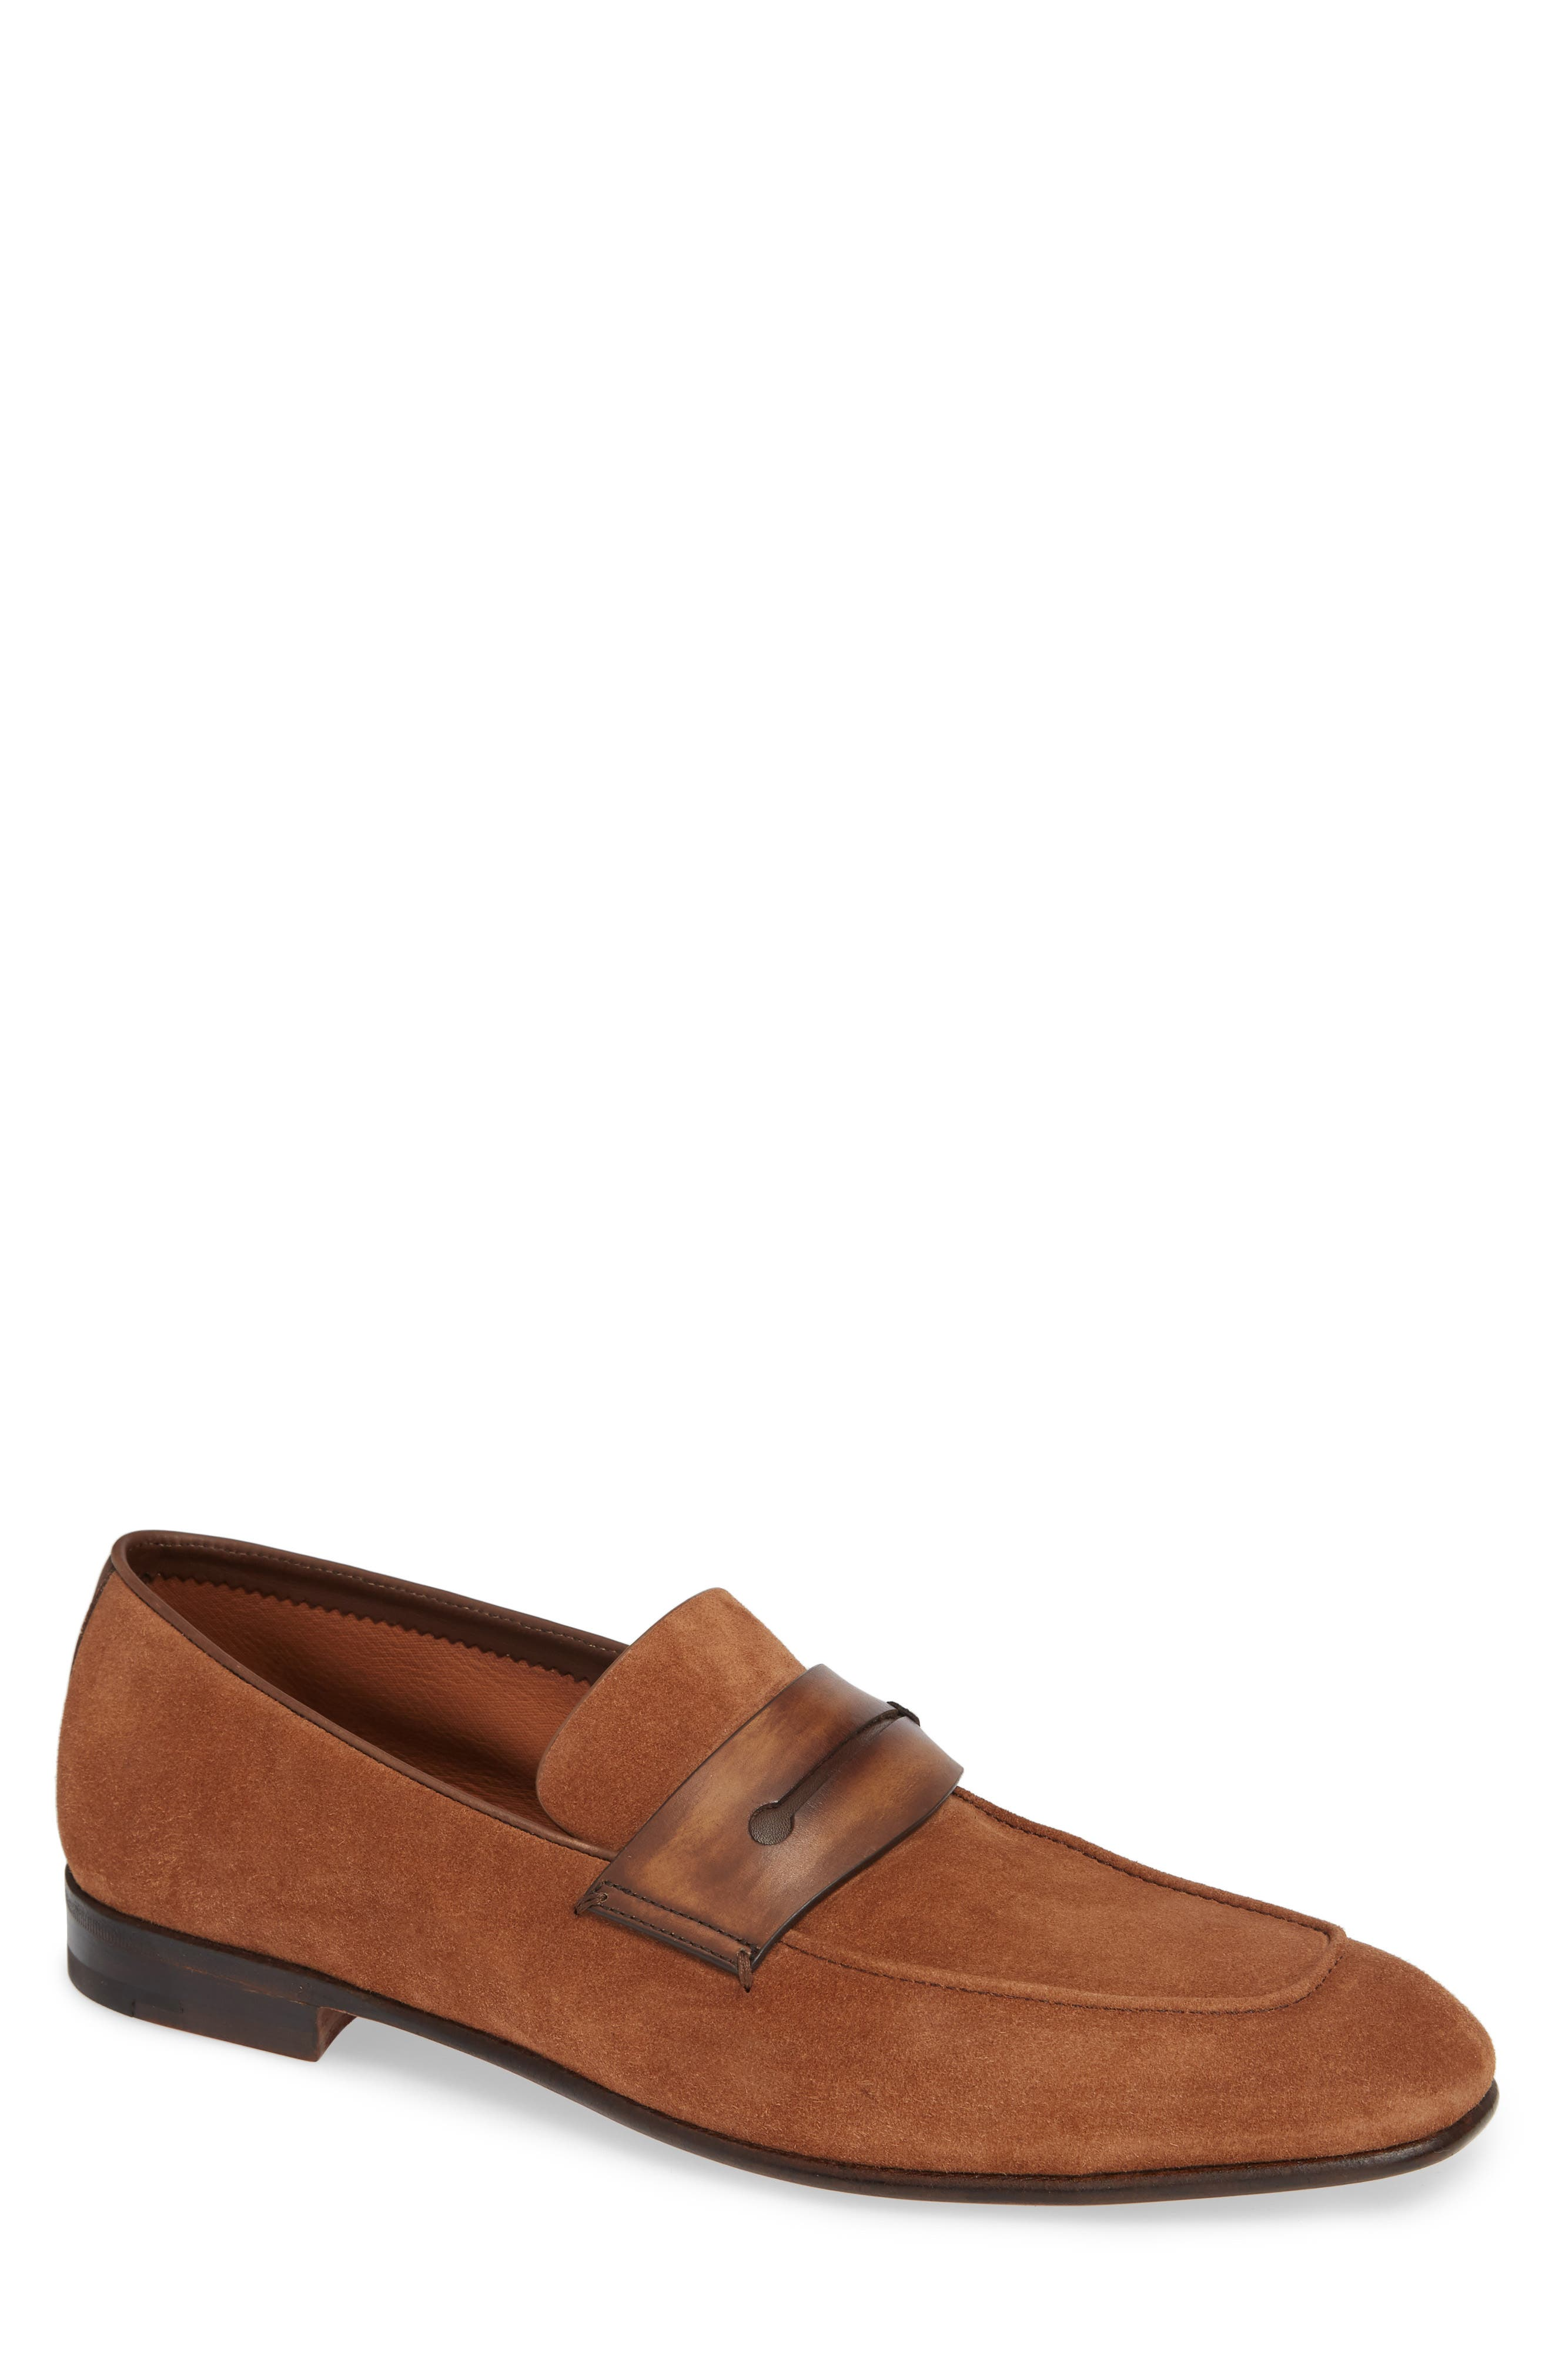 Penny Loafer,                             Main thumbnail 1, color,                             BROWN/BROWN